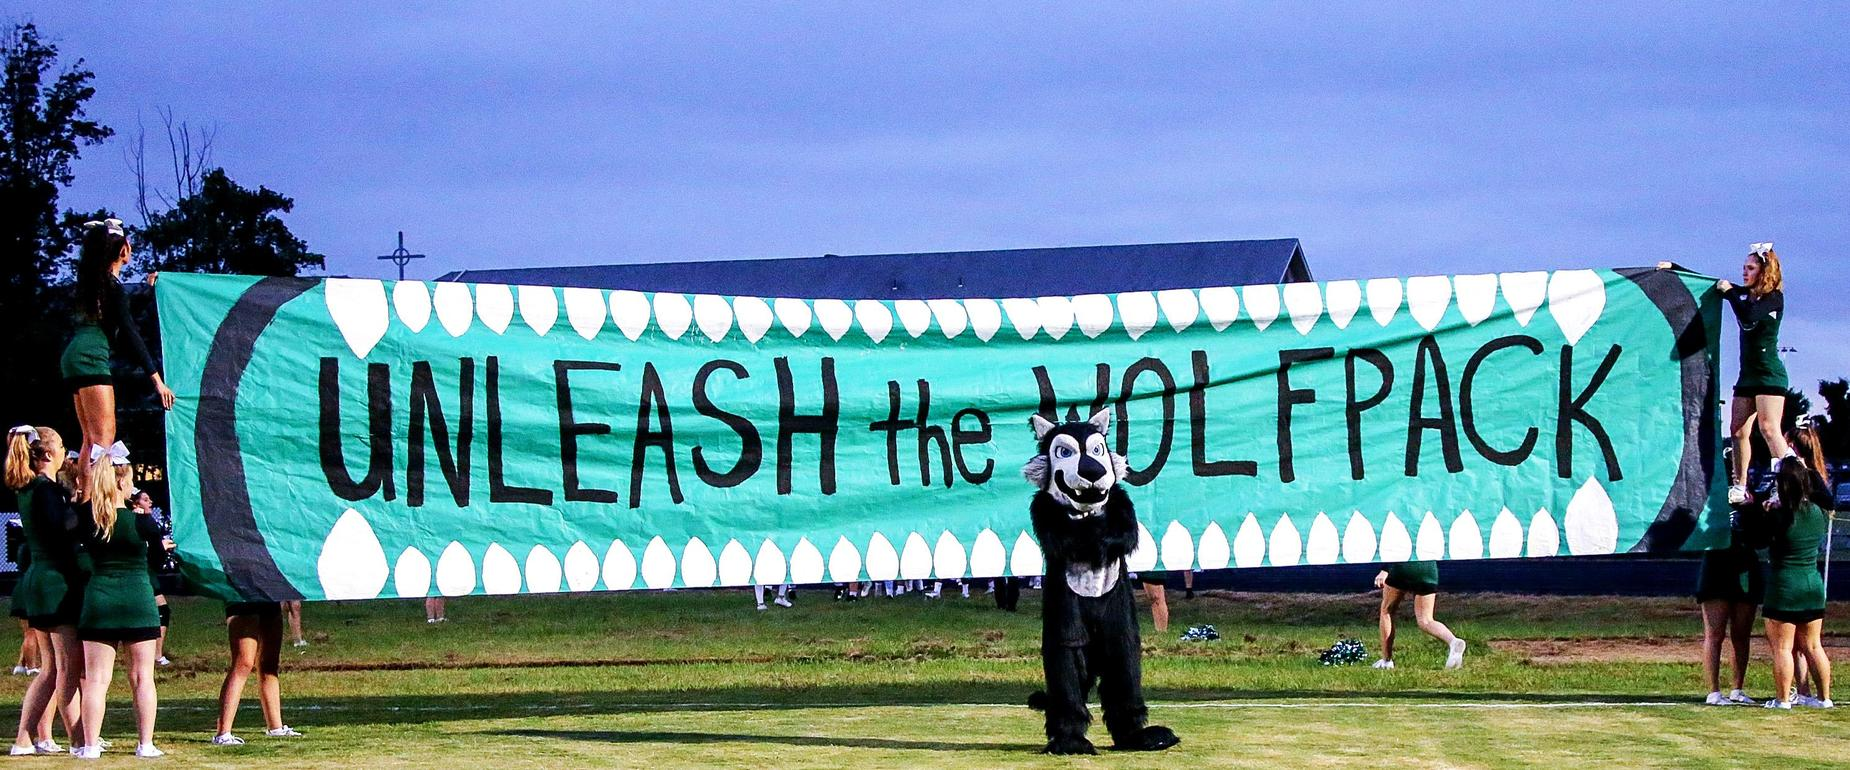 A Wolf Pack banner